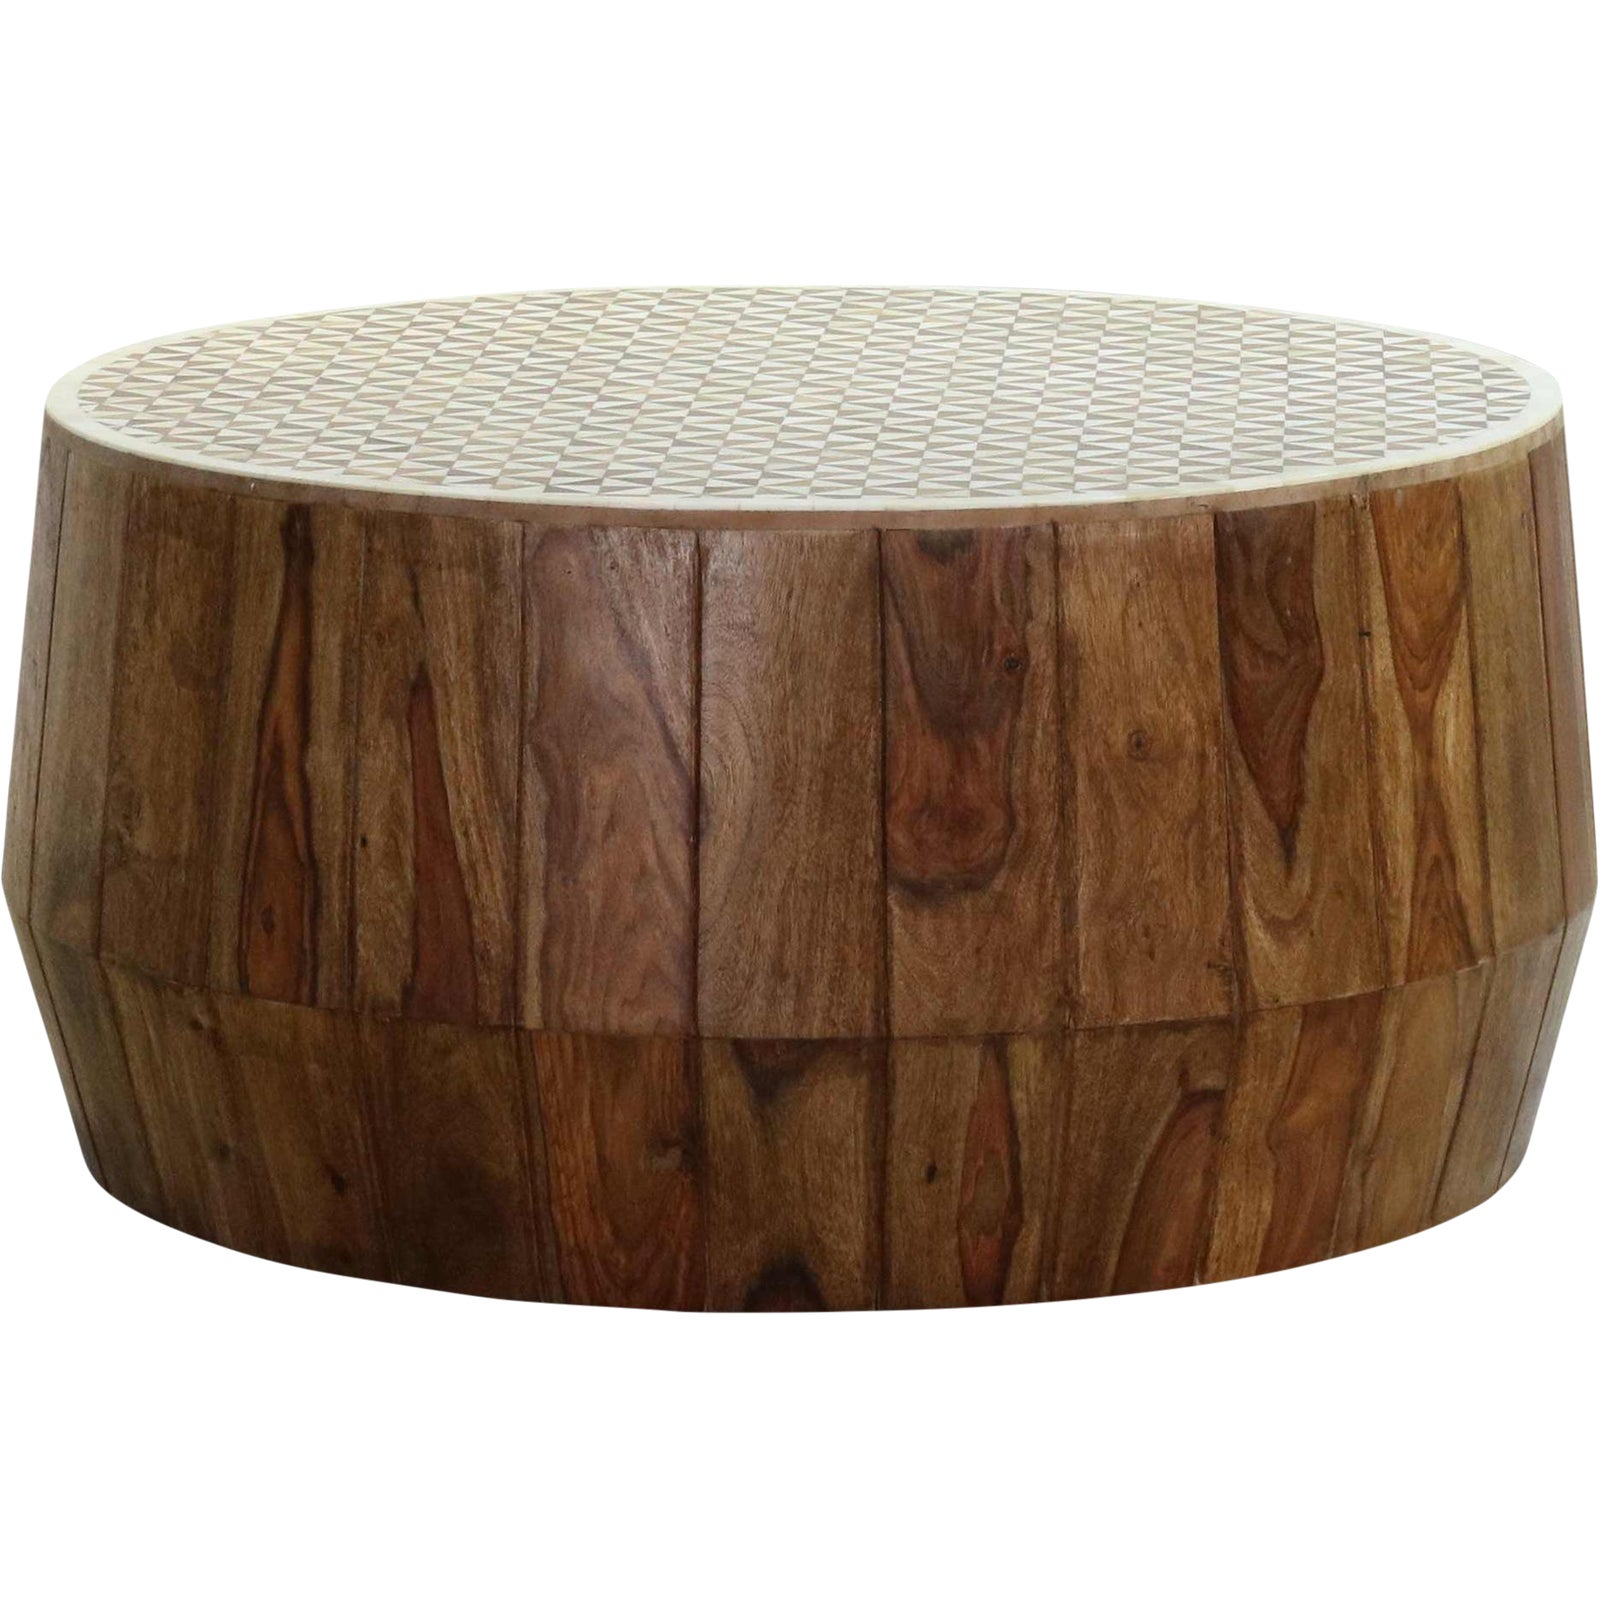 Savona Inlay Mango Wood Coffee Table Chairish